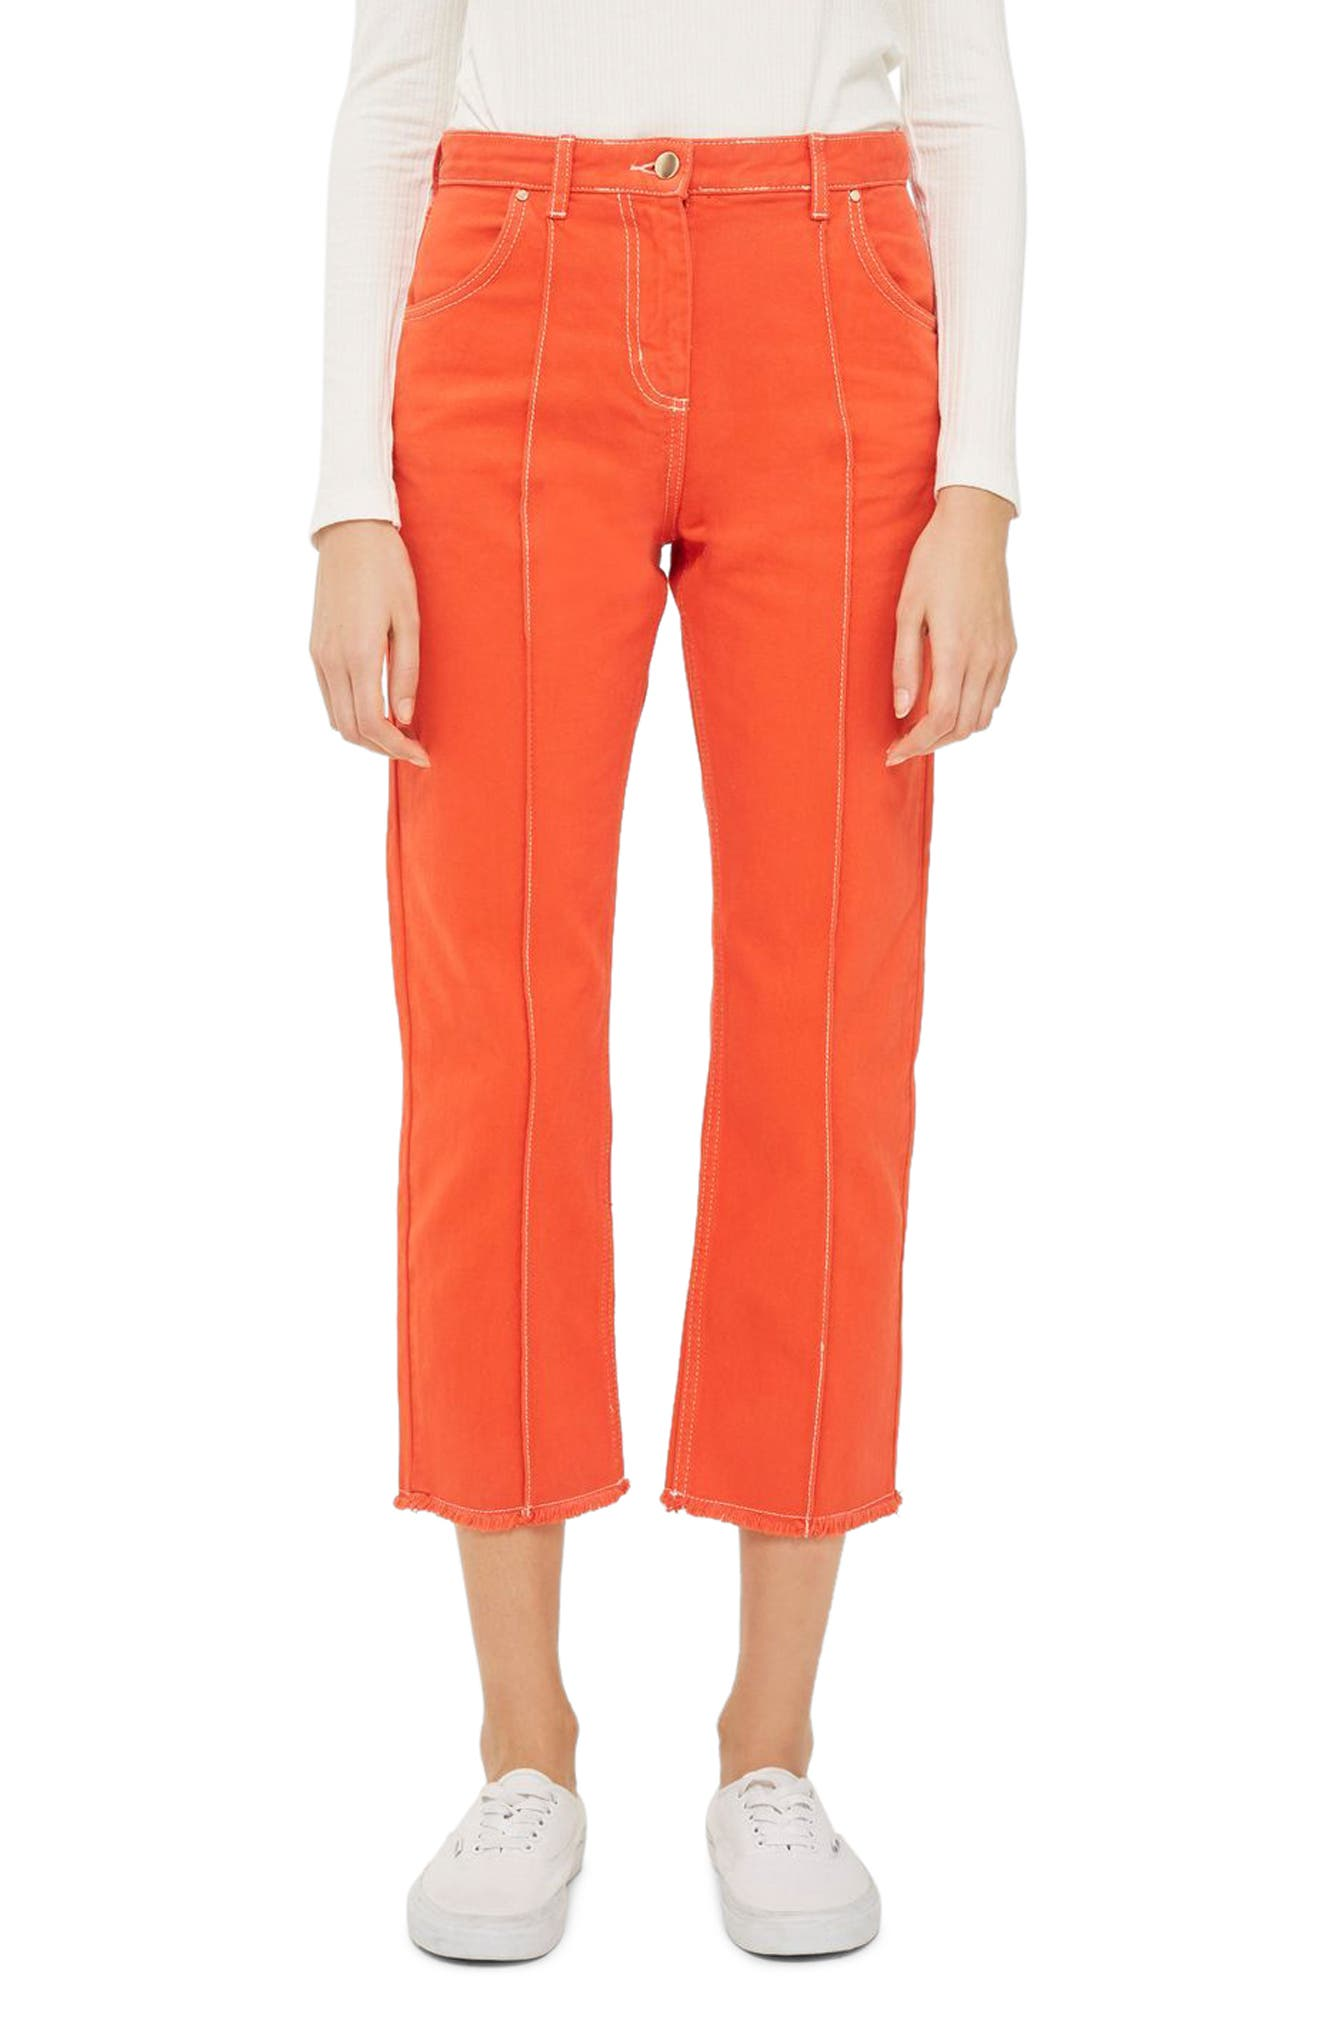 Topshop Boutique Seam Front Crop Jeans